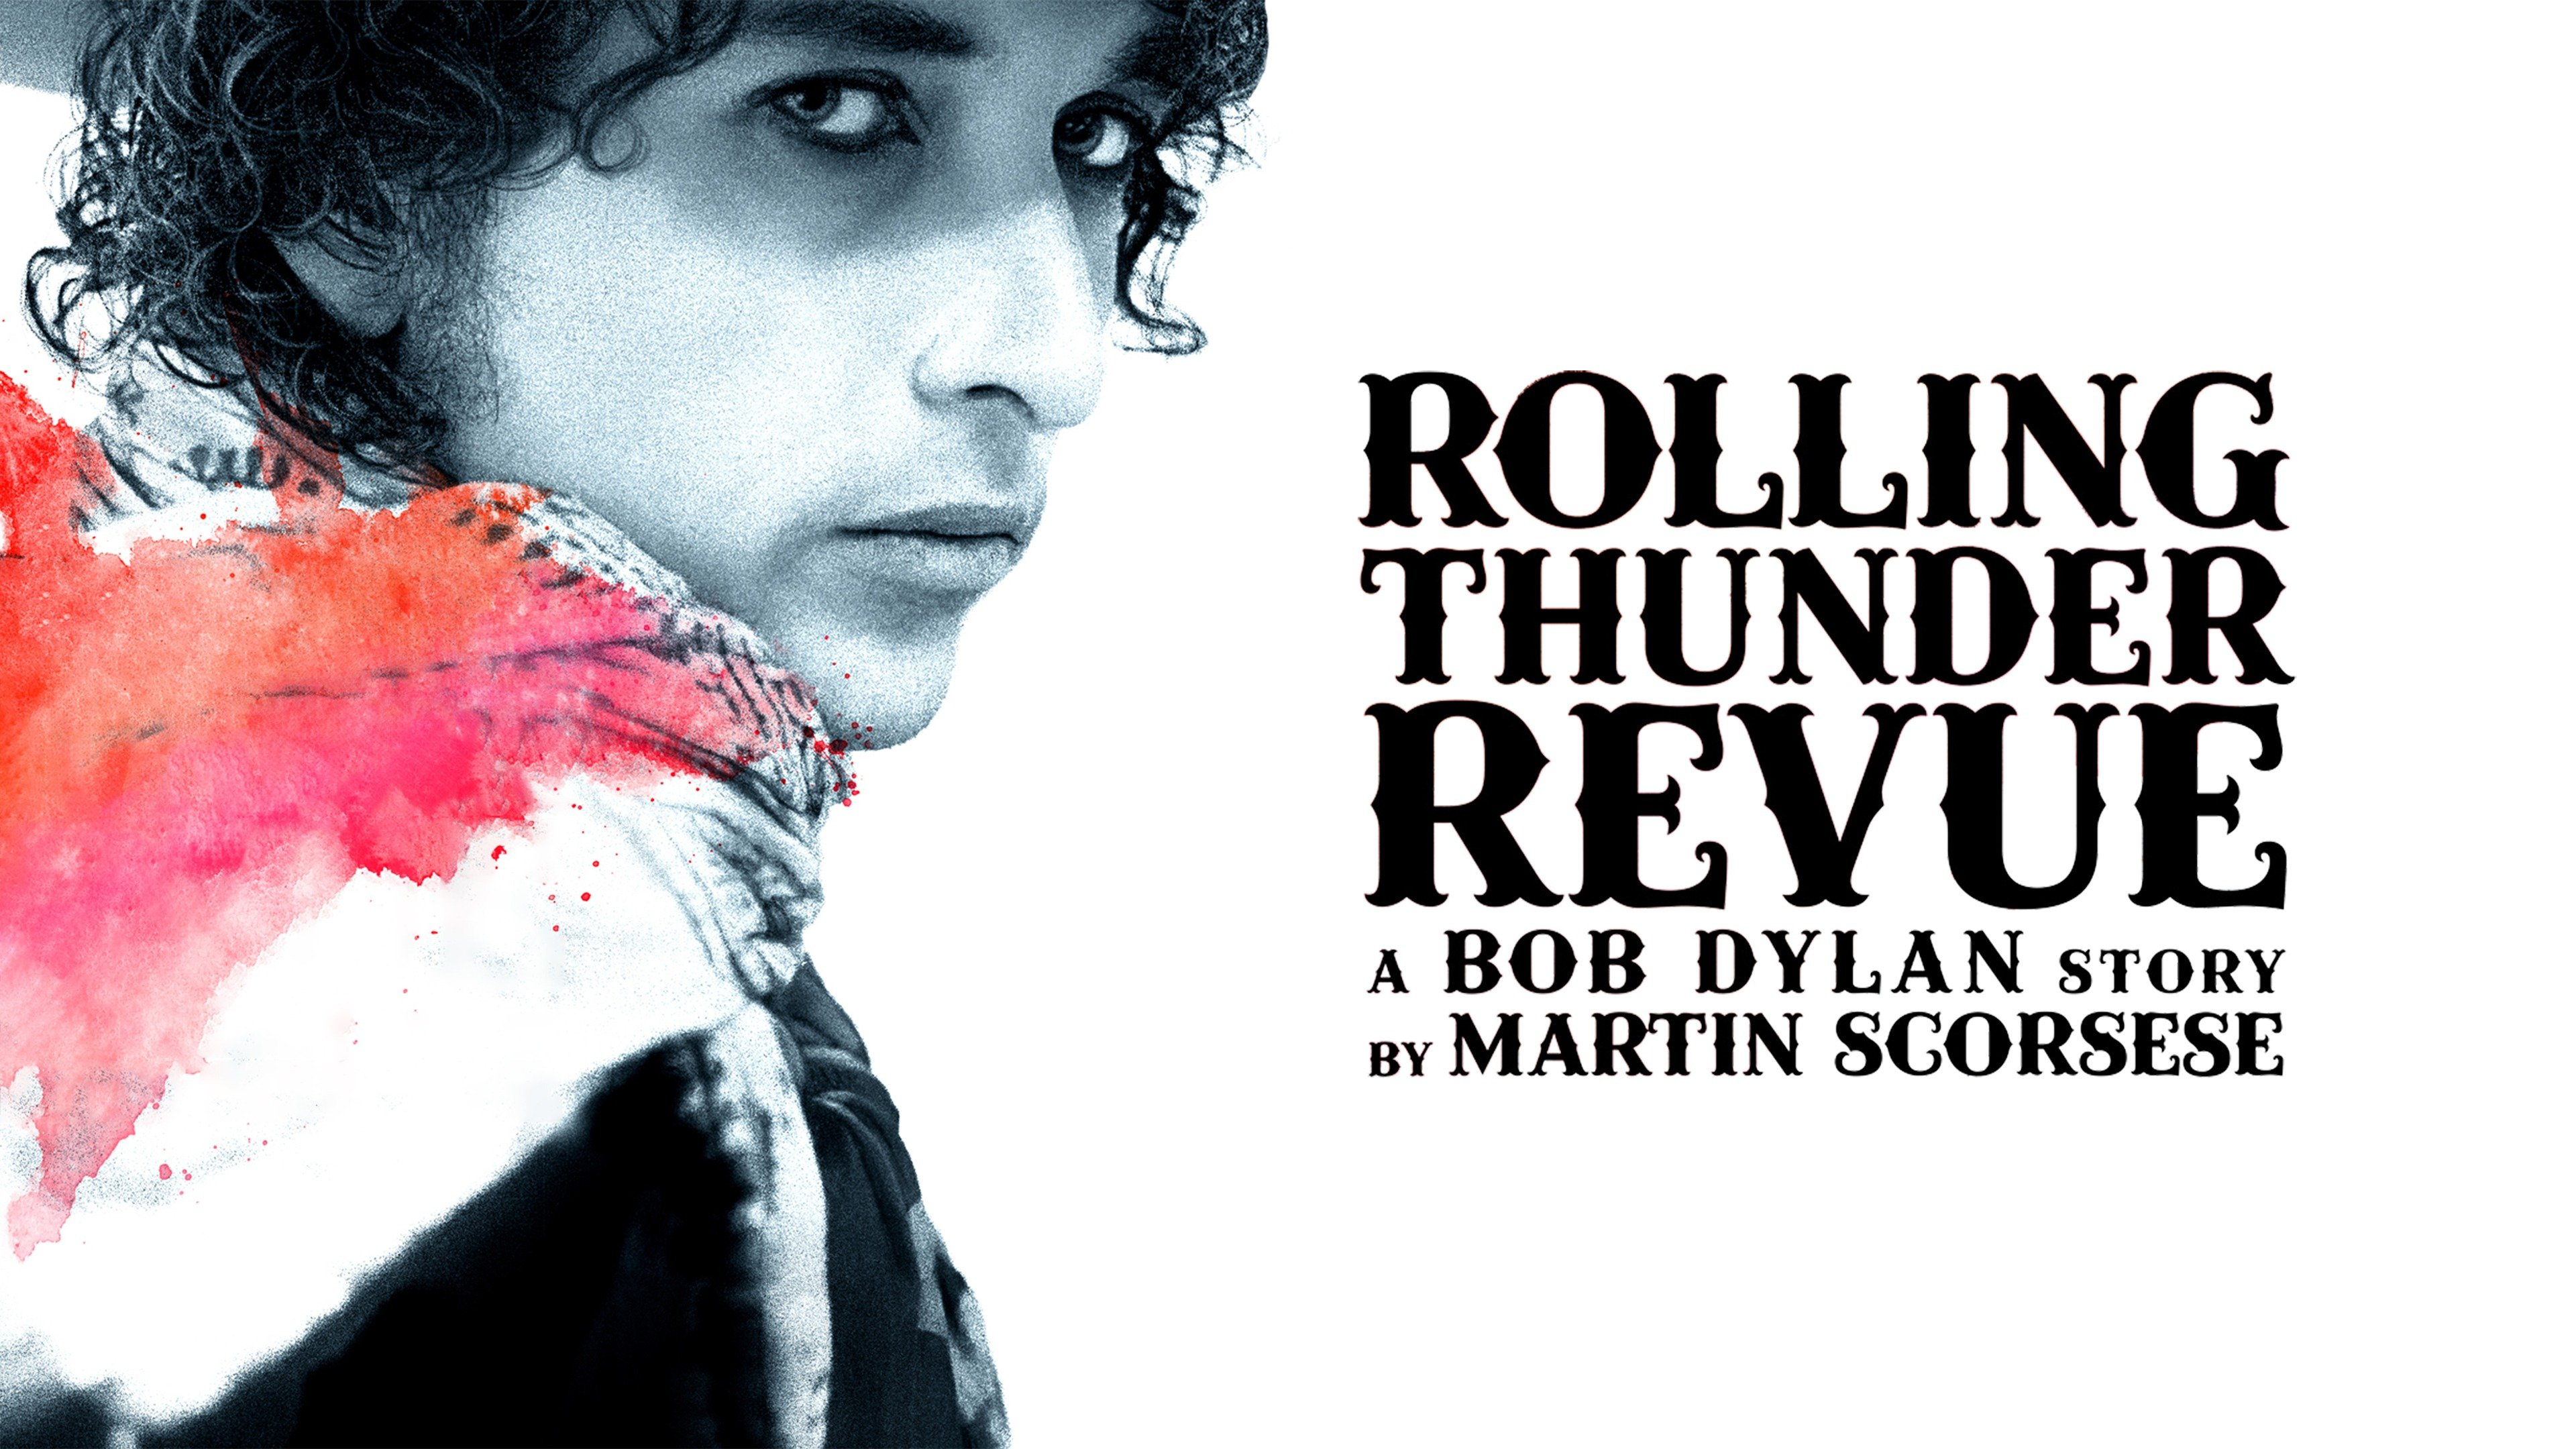 2019 Rolling Thunder Revue A Bob Dylan Story by Martin Scorsese movie poster